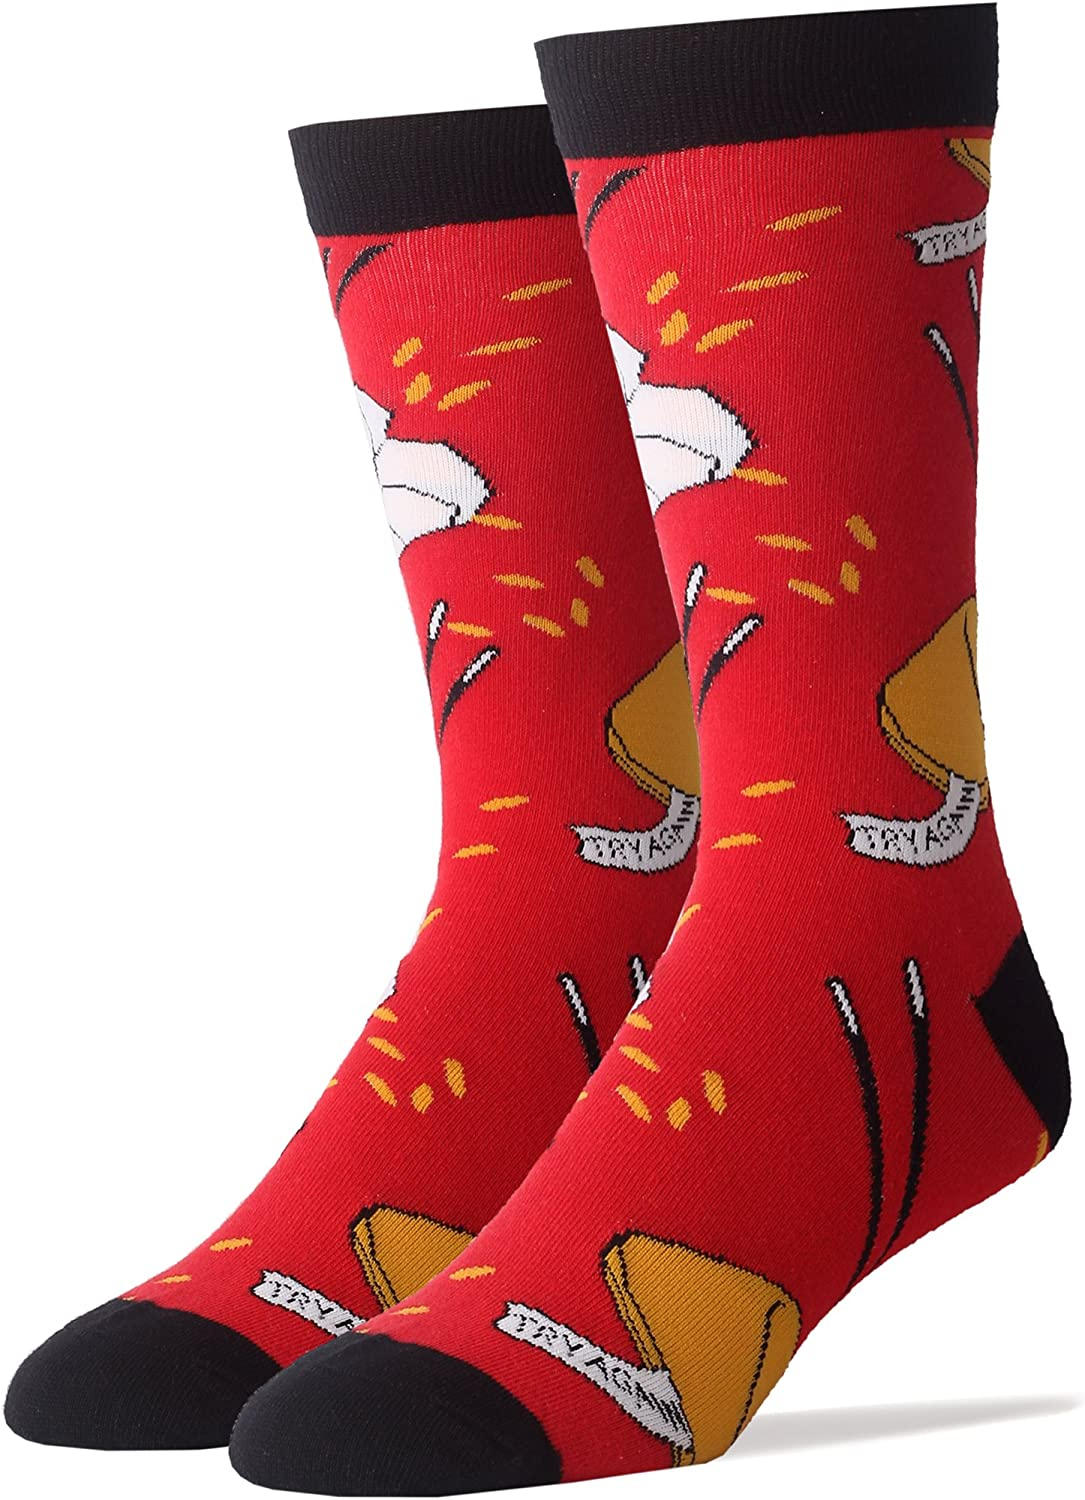 One Black One Red Pair 2 PAIRS Foozys Women/'s Socks CHINESE TAKEOUT NEW